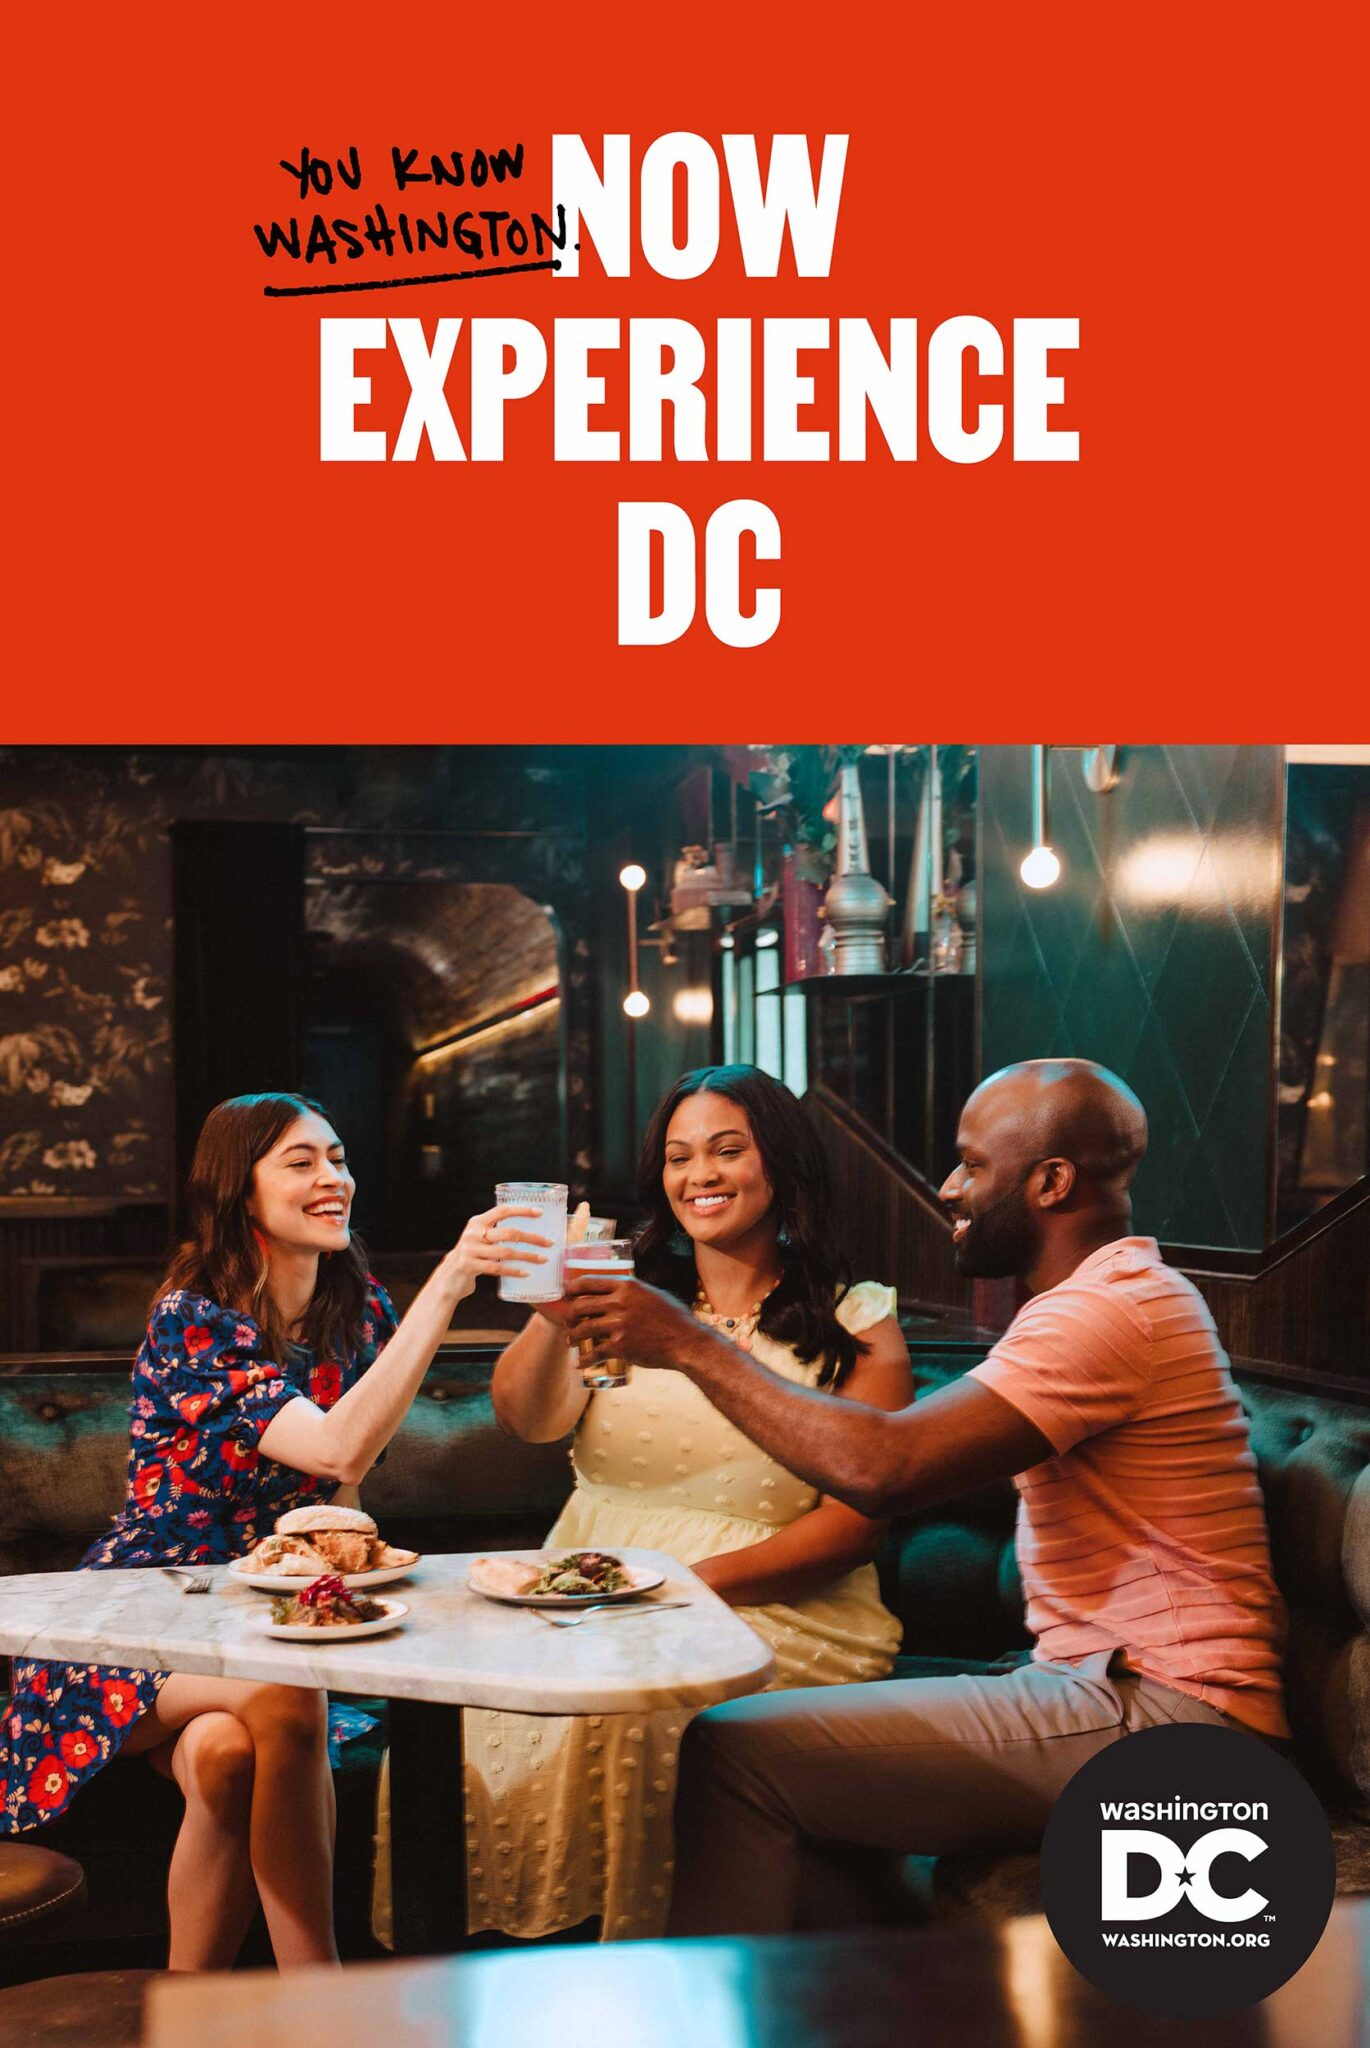 Experience-DC-Ad-Boards_Page_6